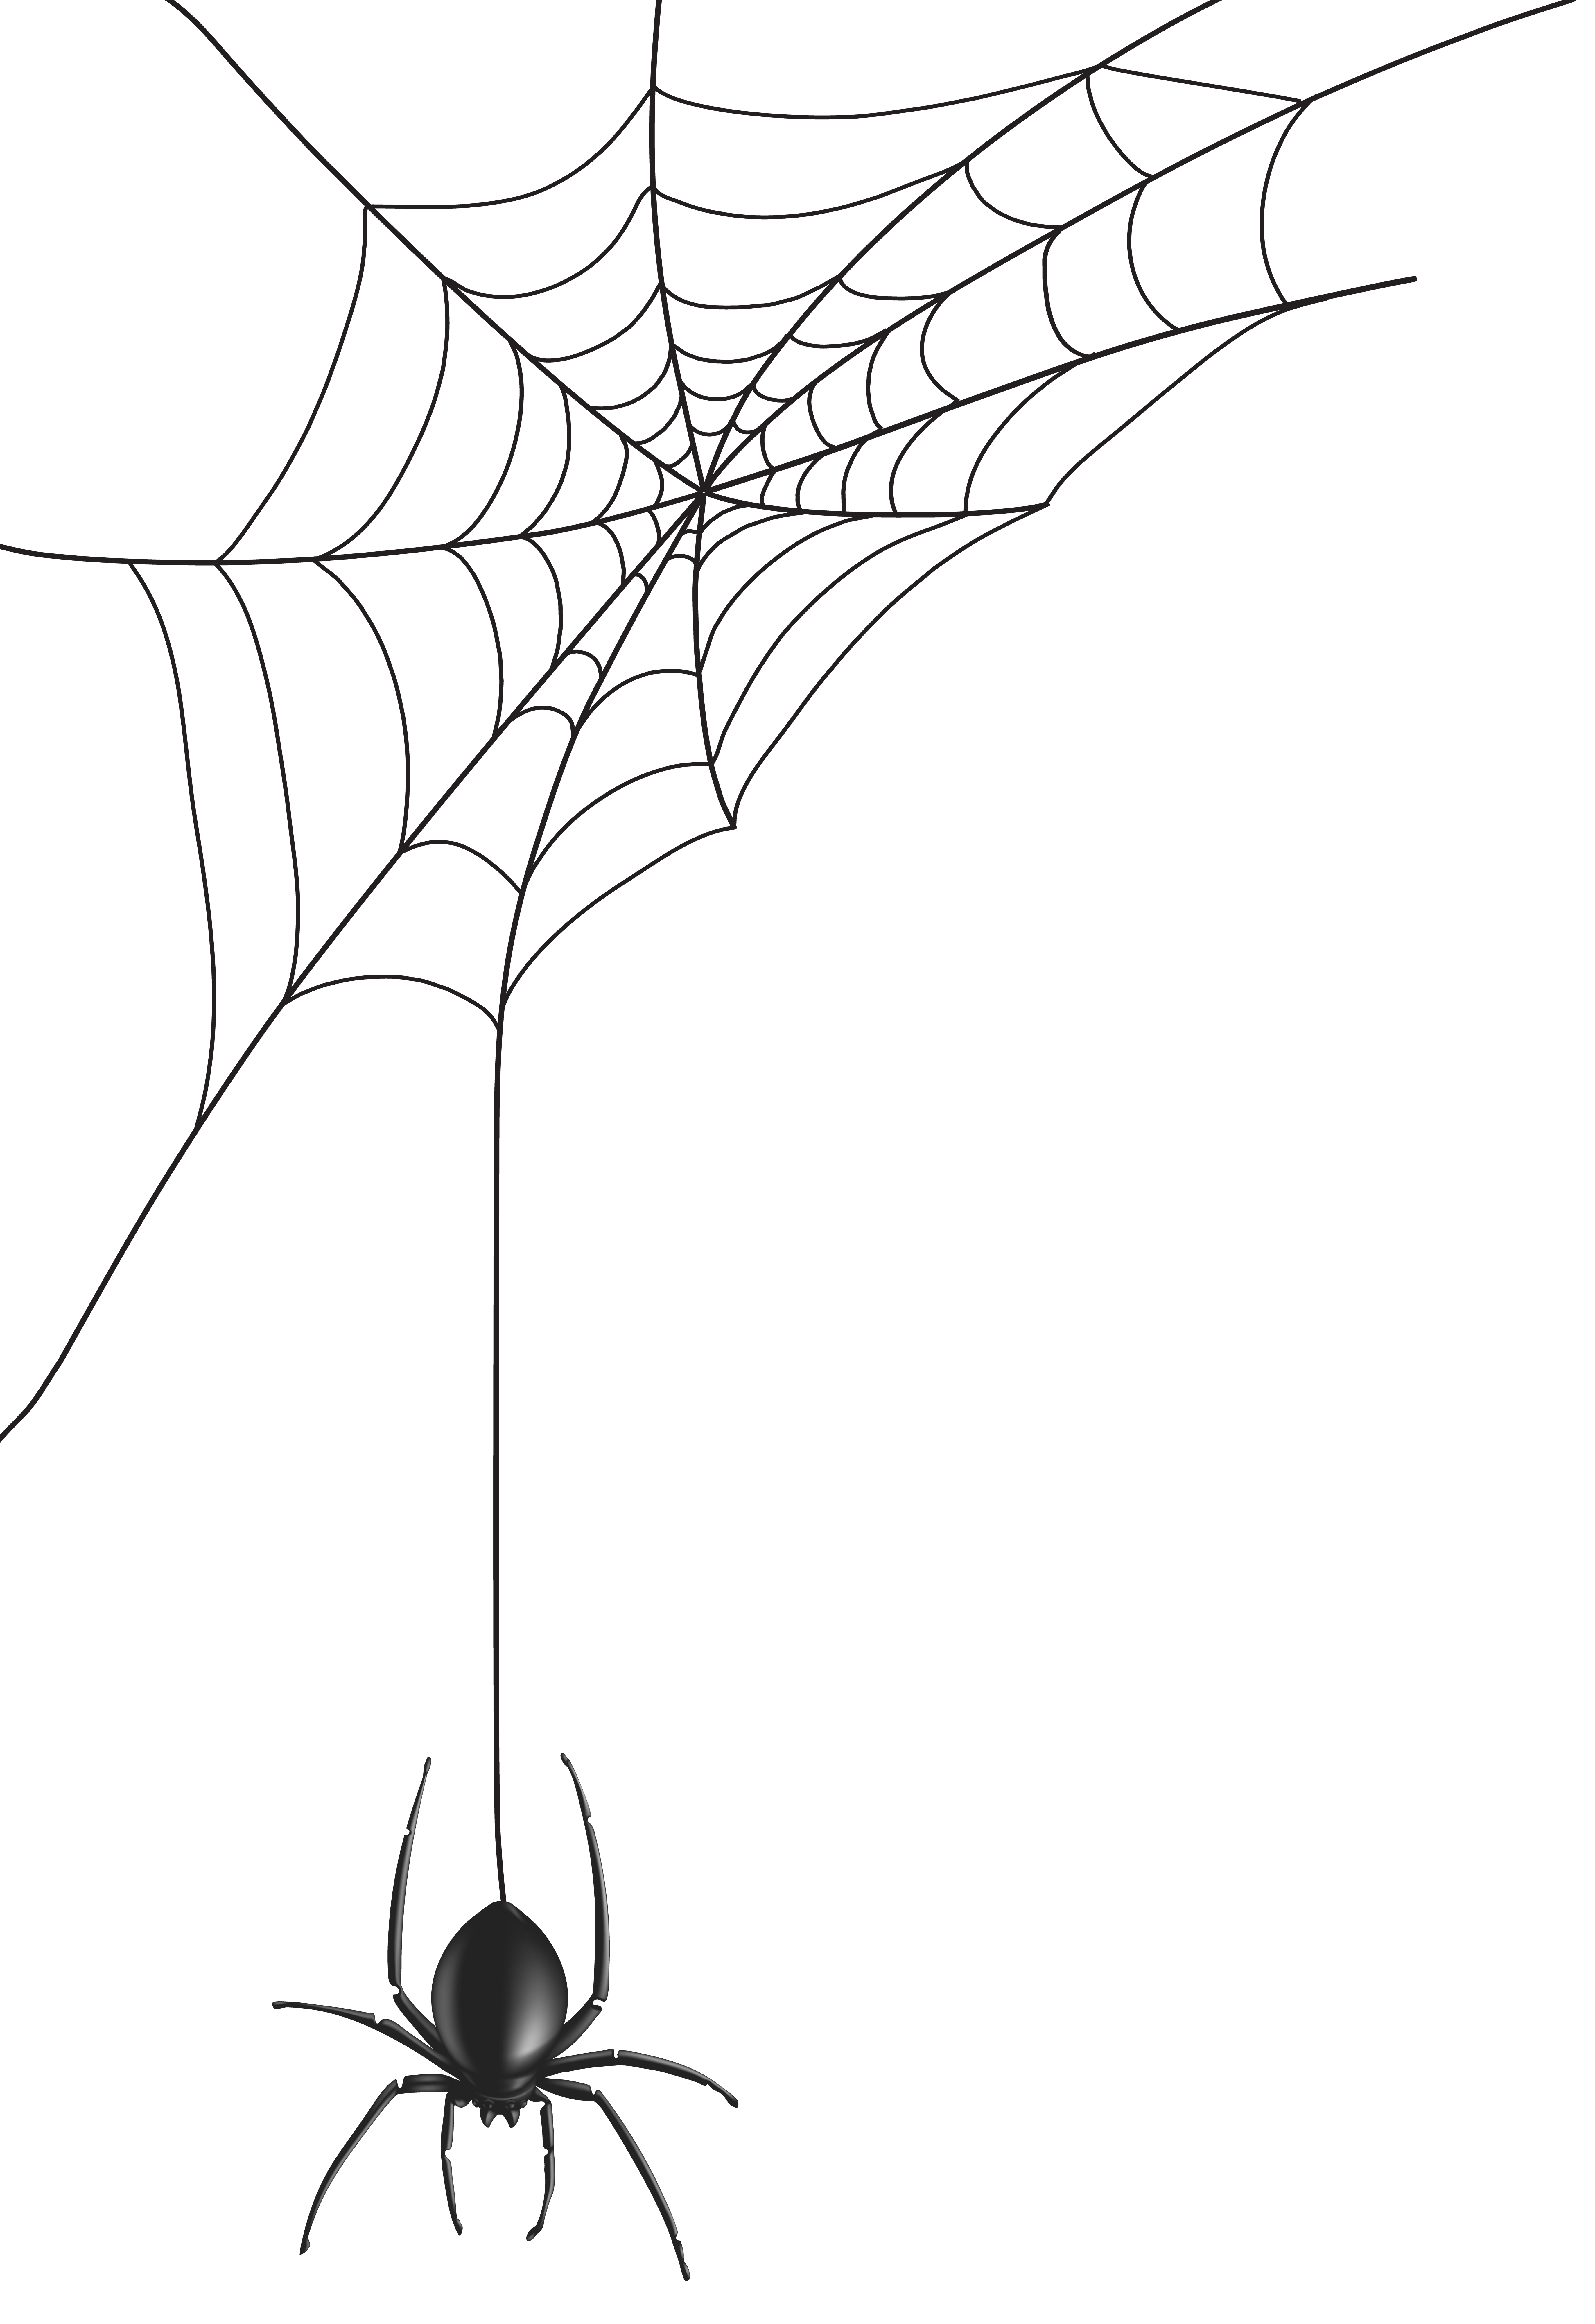 5491x8000 Hanging Bat Transparent Png Clipart Free Download